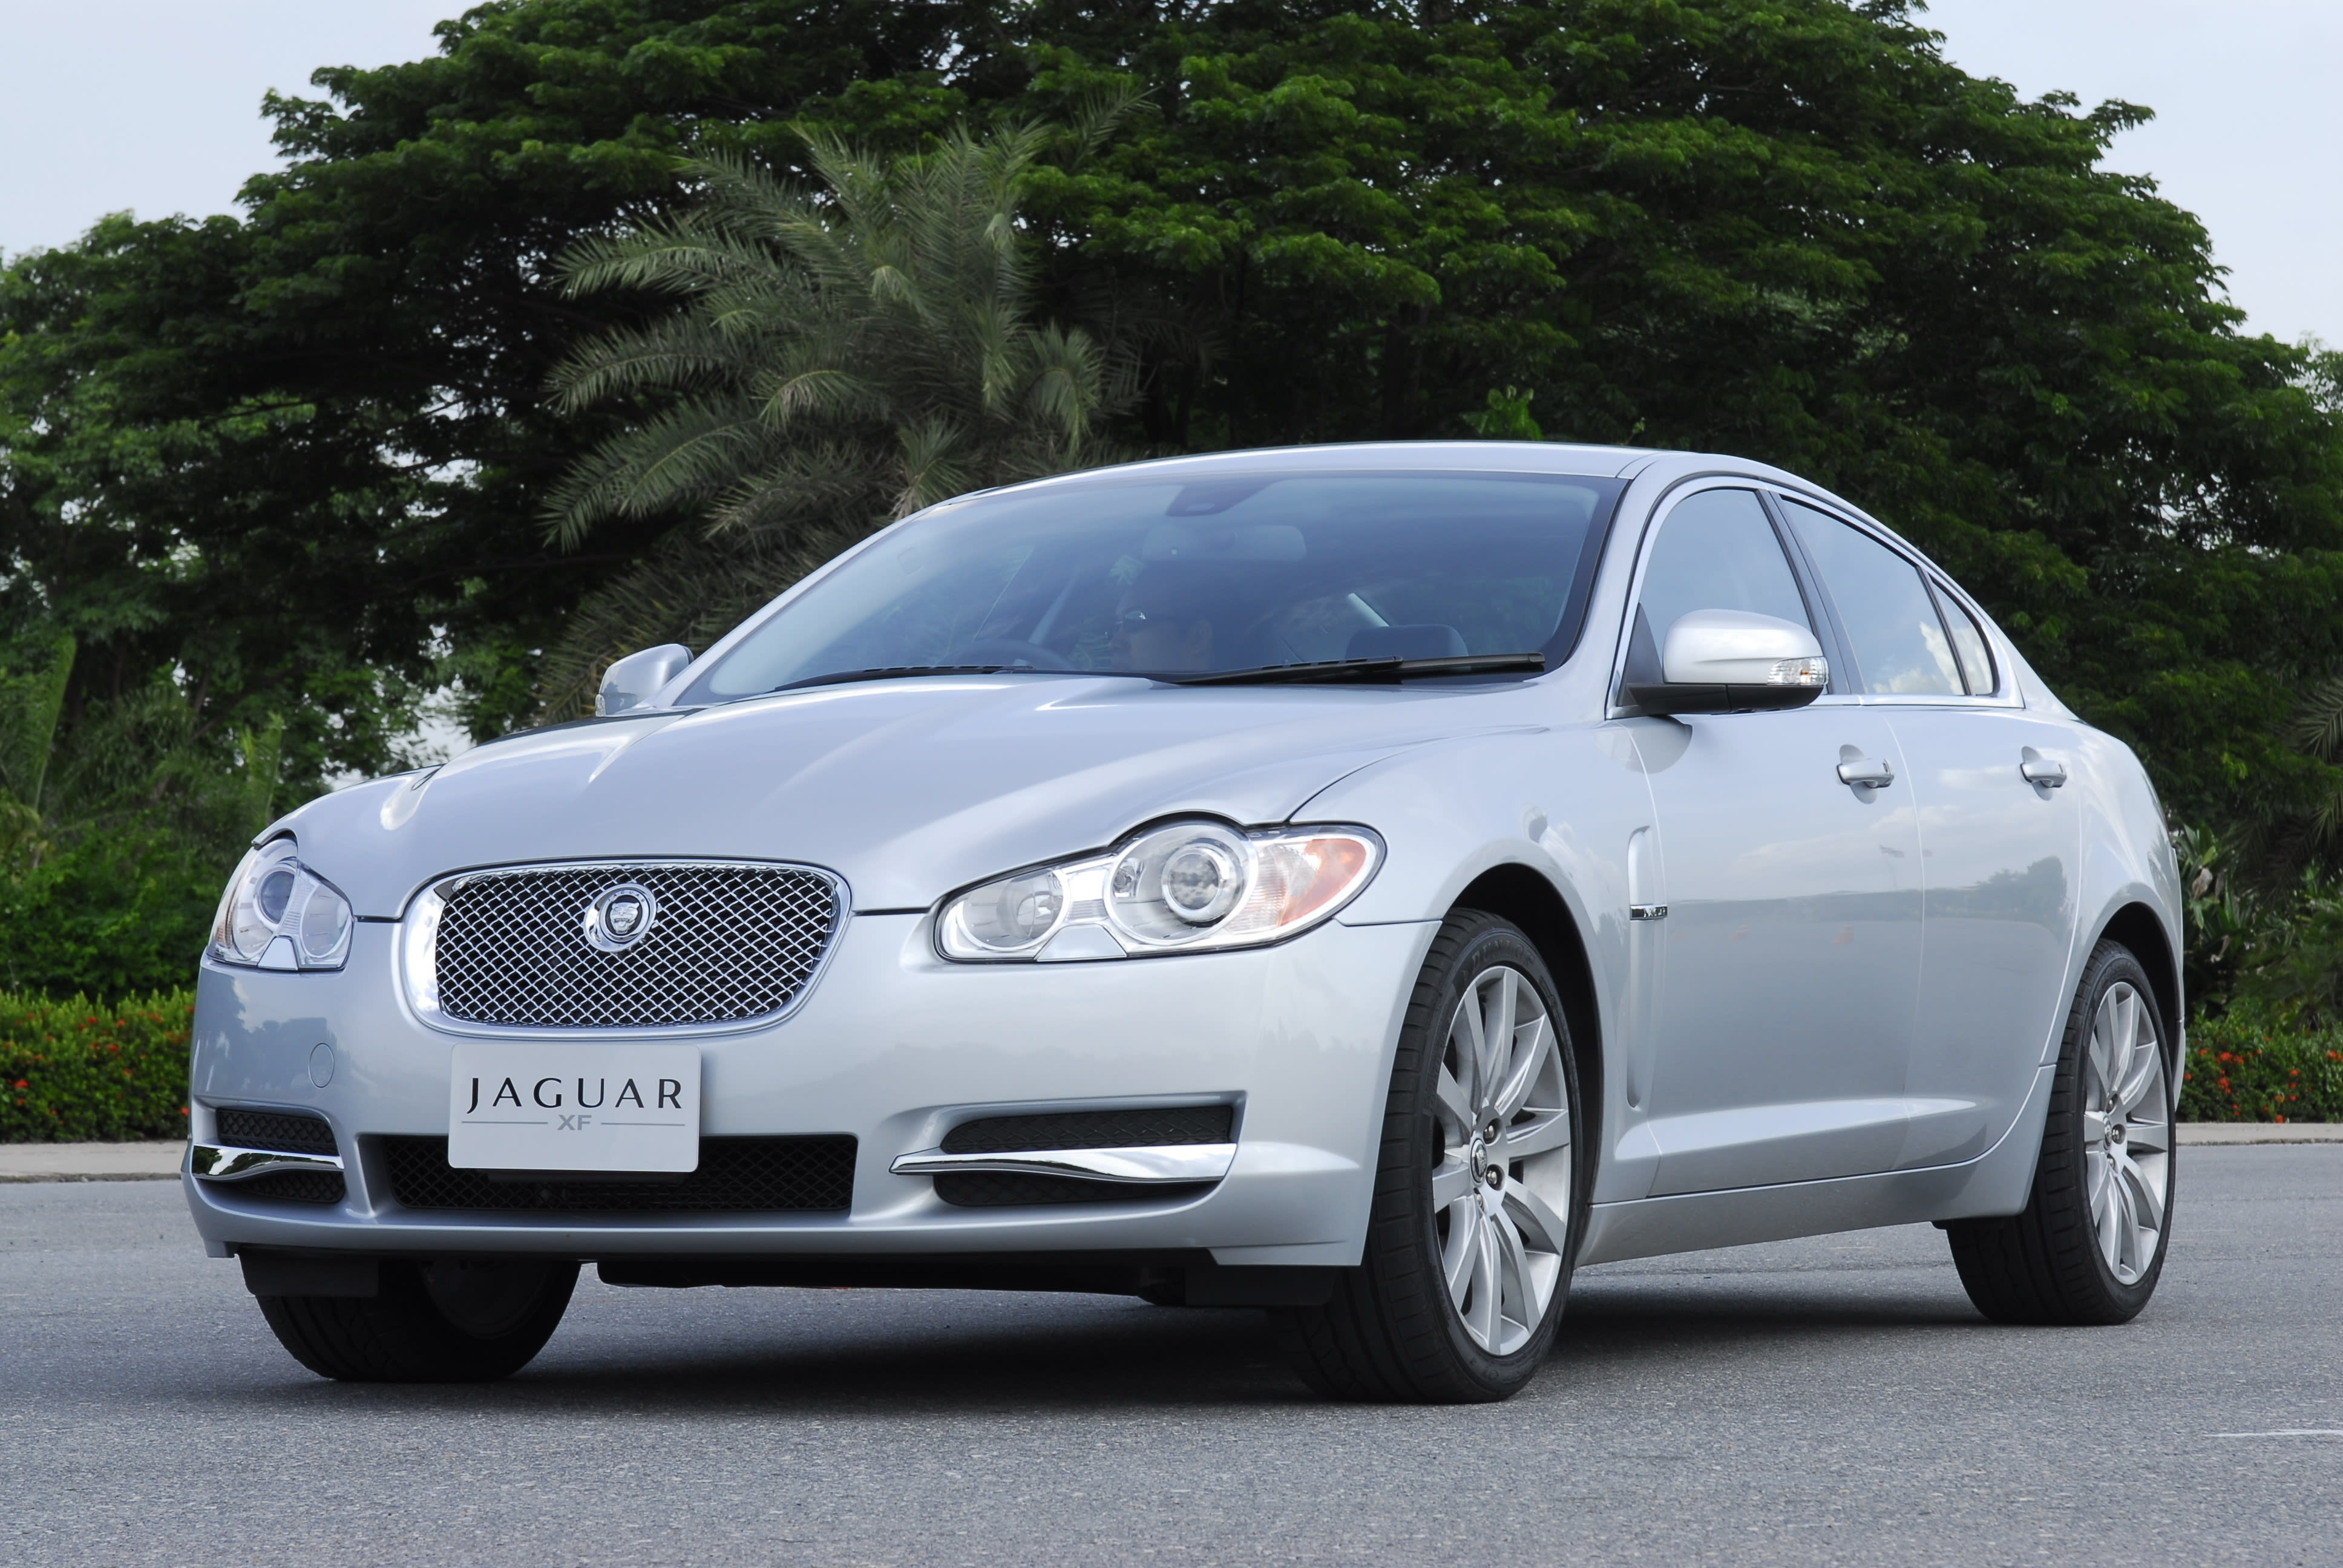 Late-model Jaguars Being Recalled Over Air Bag Danger